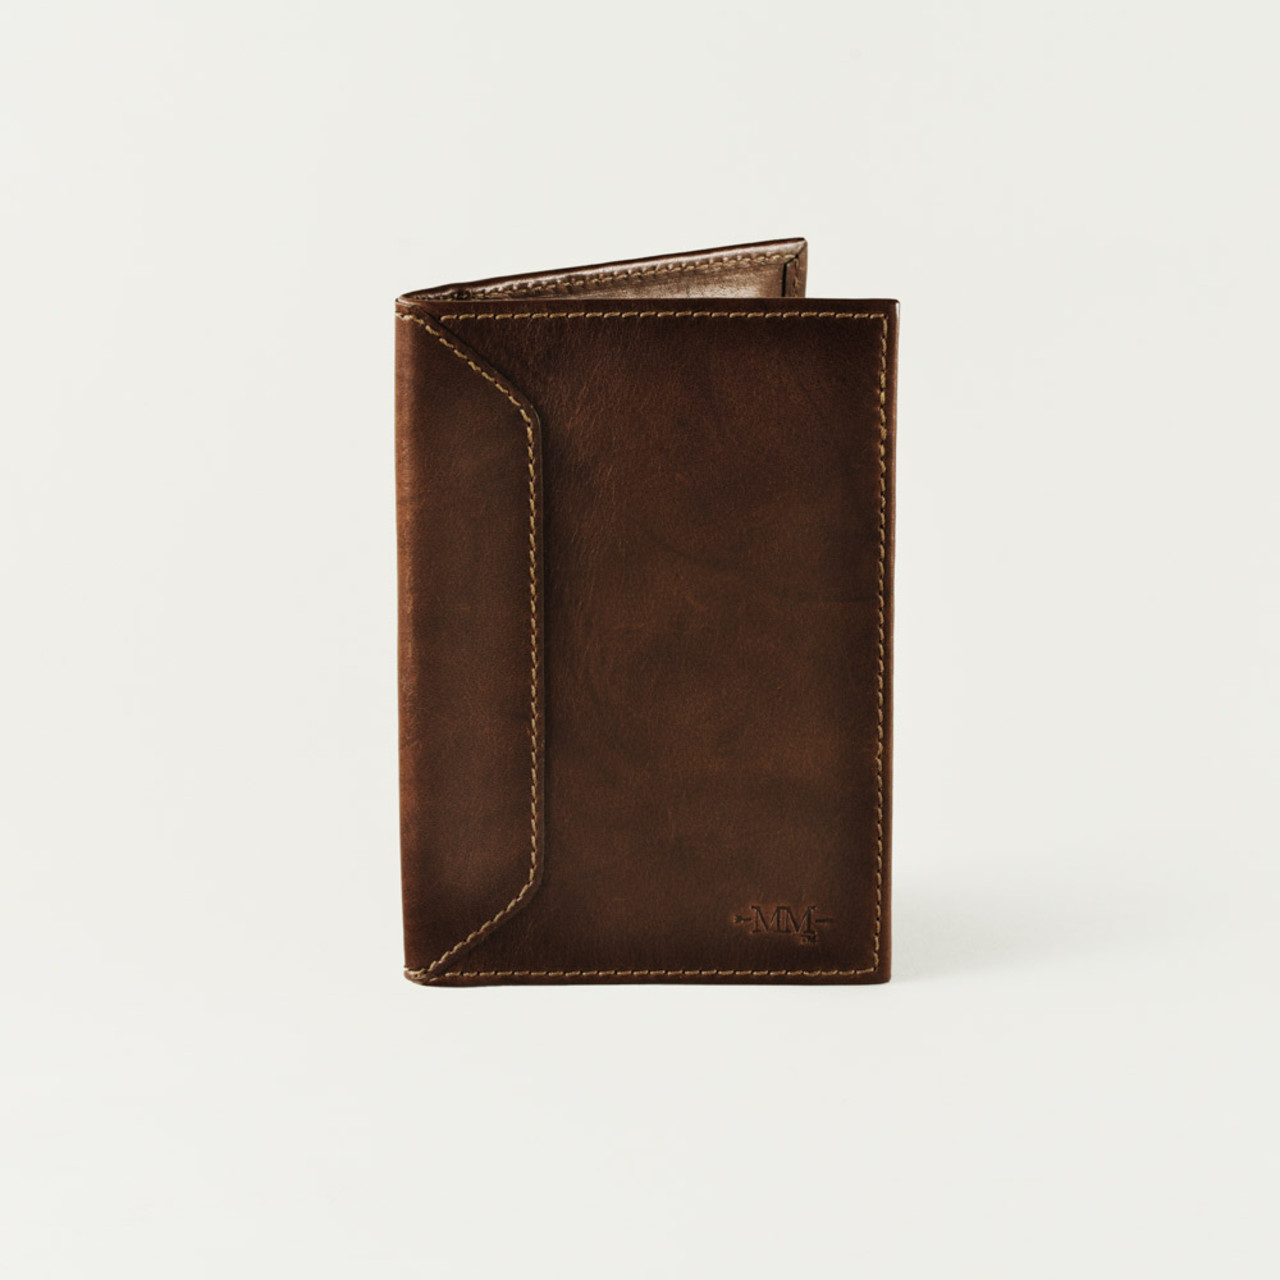 Passport Bedding Accessories Mission Mercantile Passport Wallet Hickory